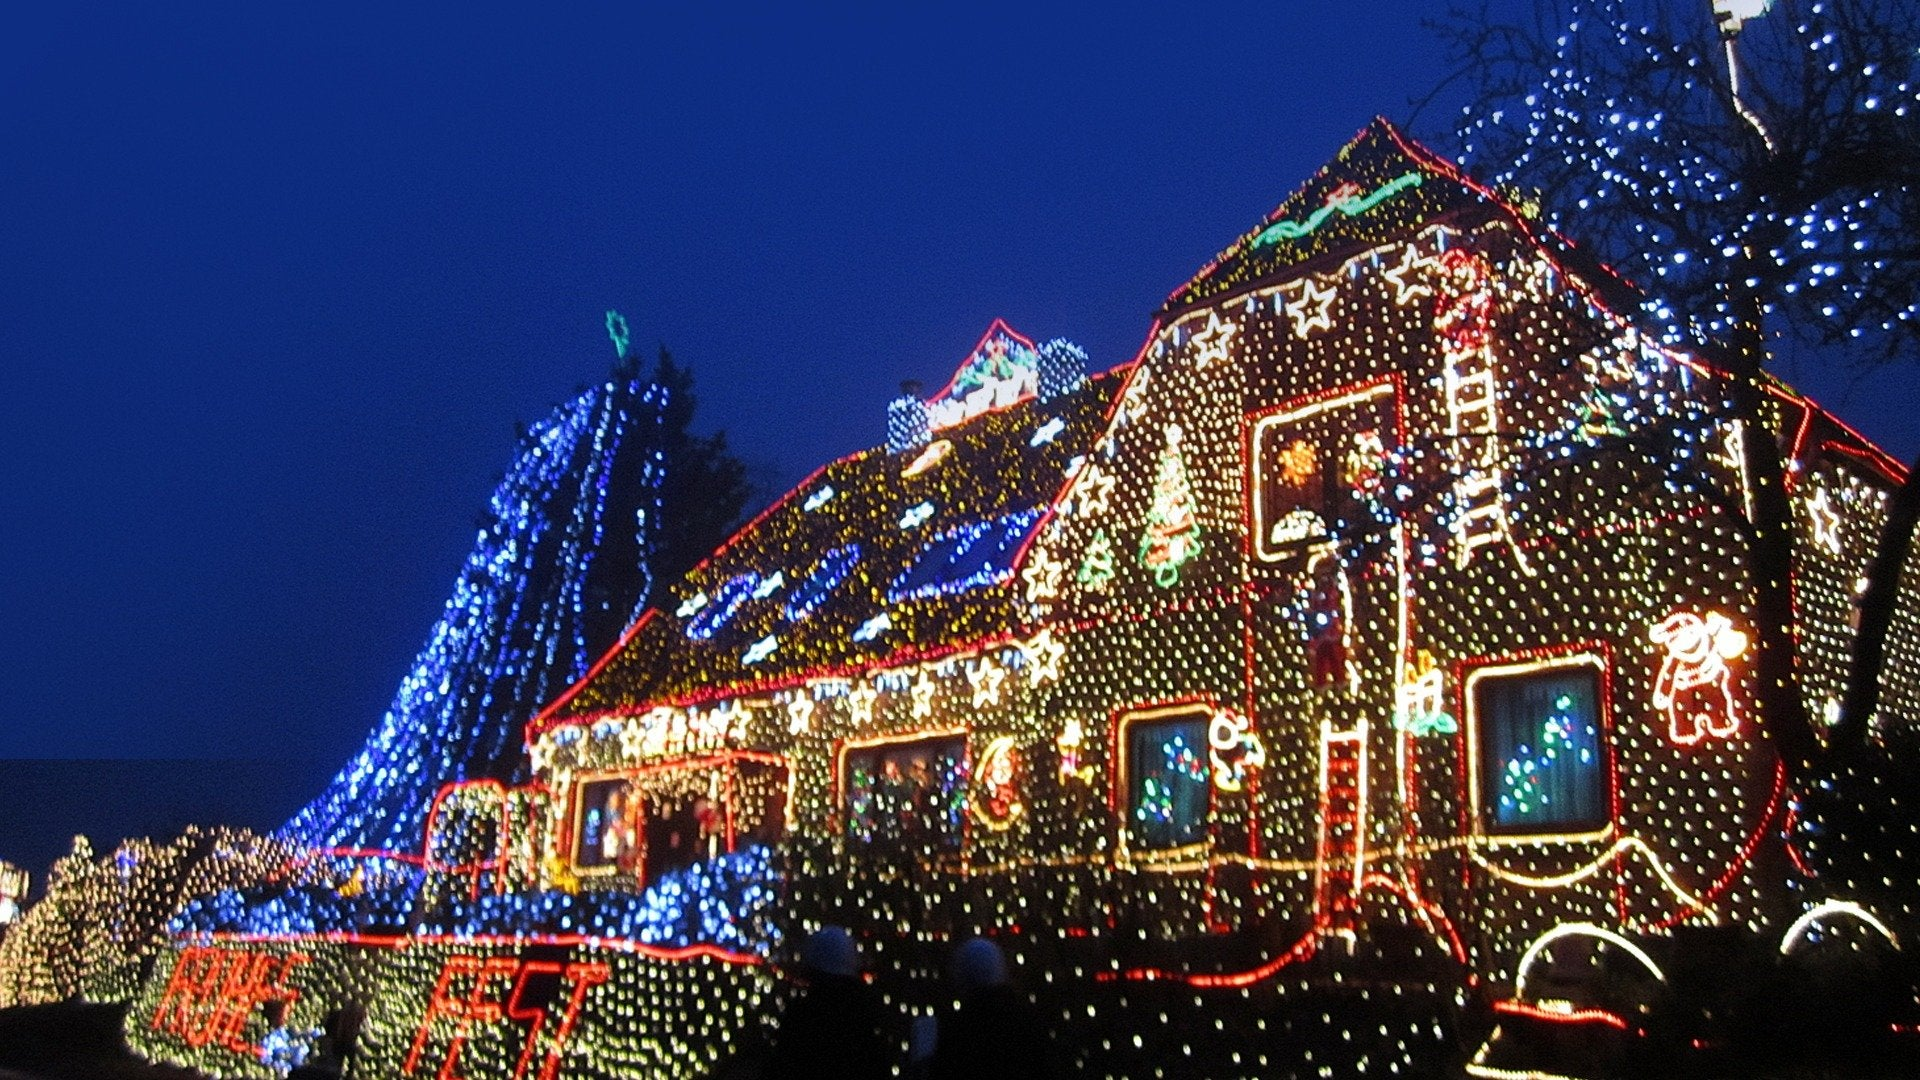 Invasion of the Christmas Lights 3: Europe